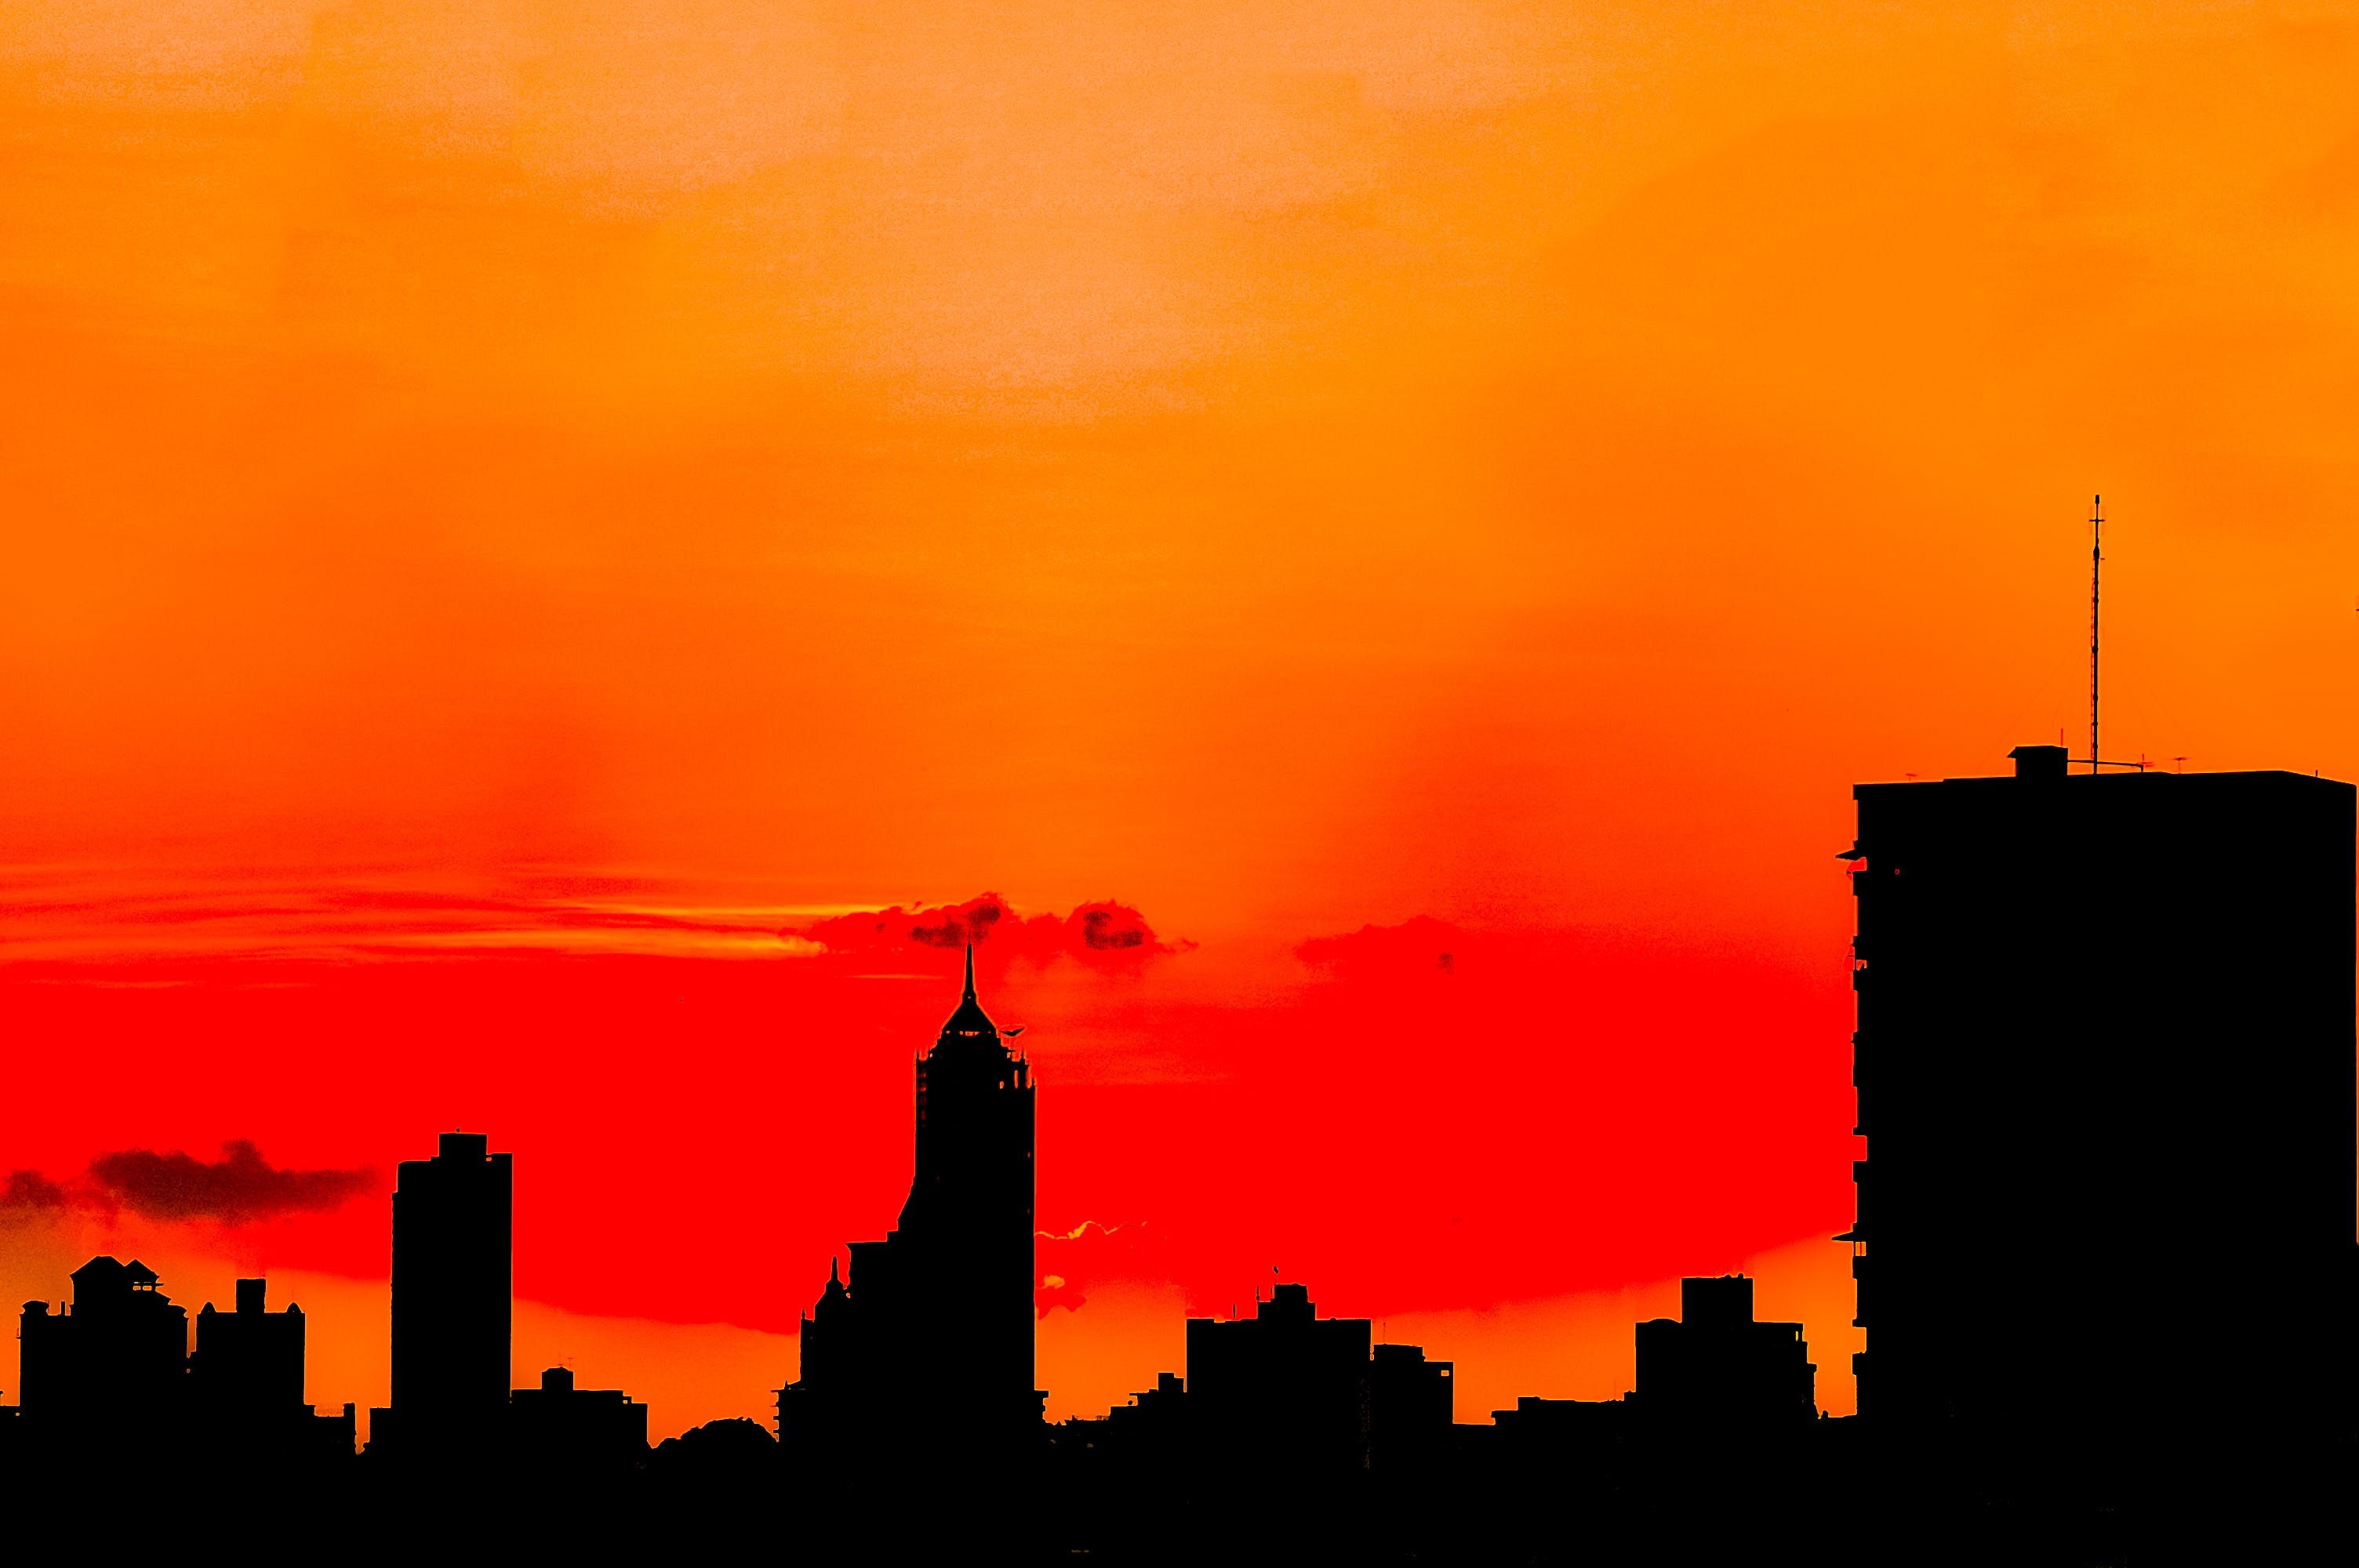 Silhouette of Buildings